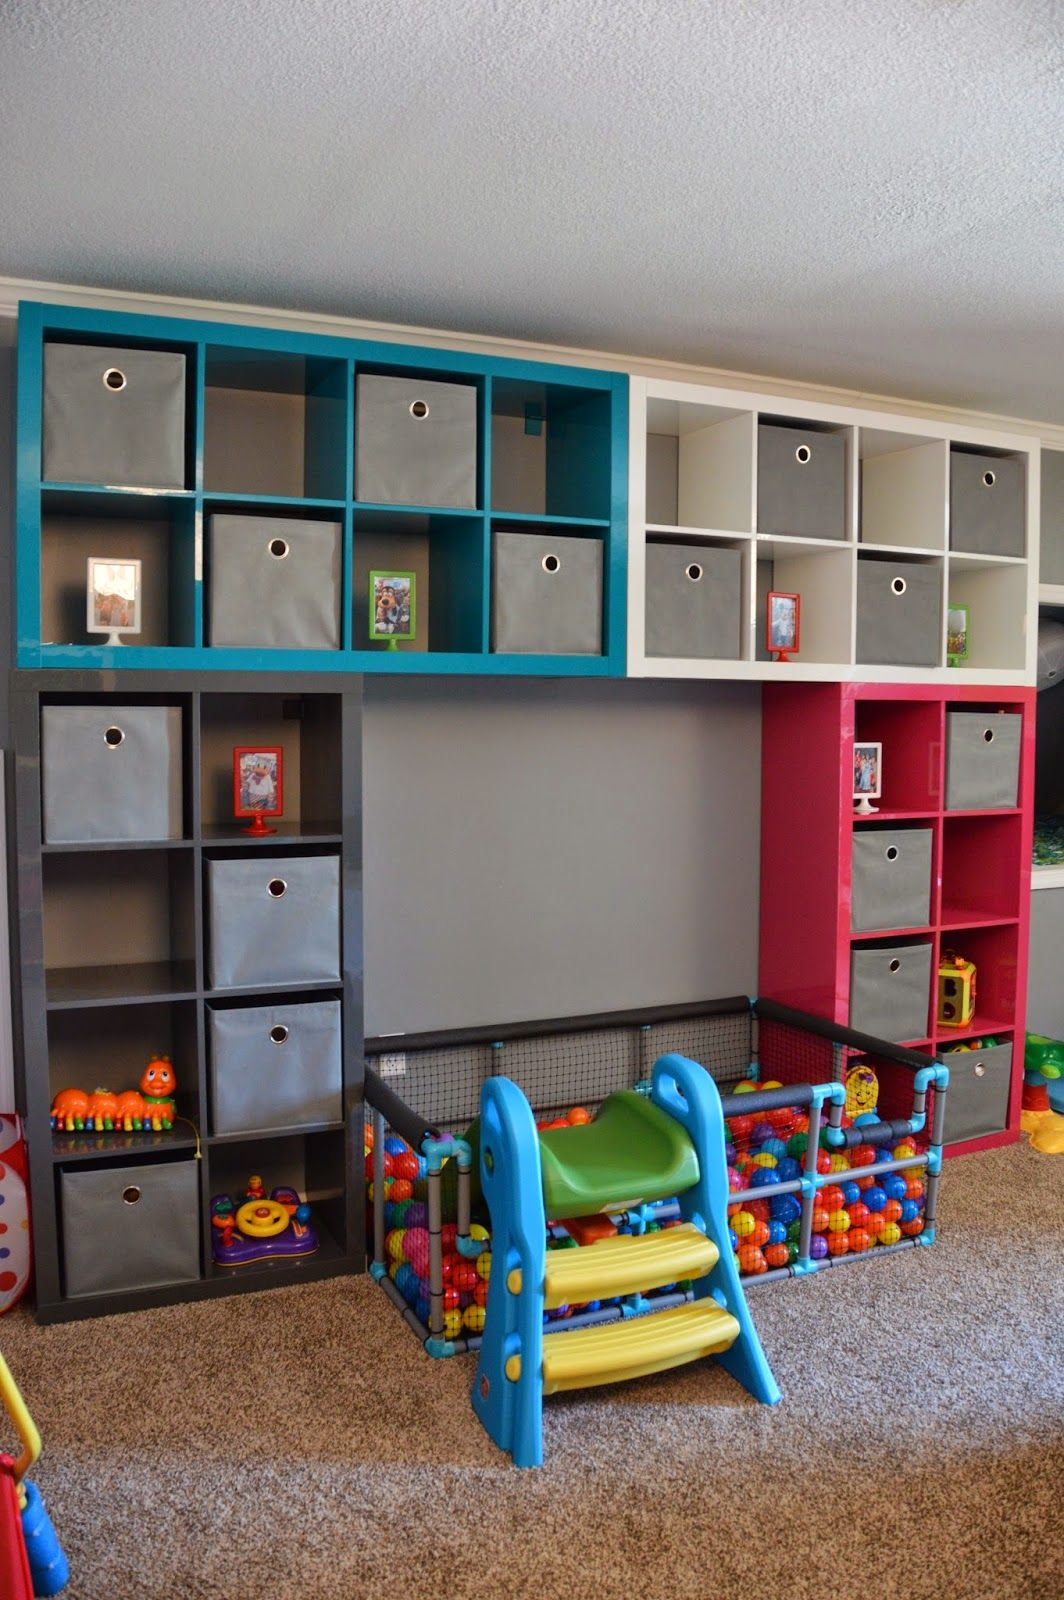 7 1 toy storage ideas diy plans in a small space your kids will love huis pinterest for Living room storage for toys